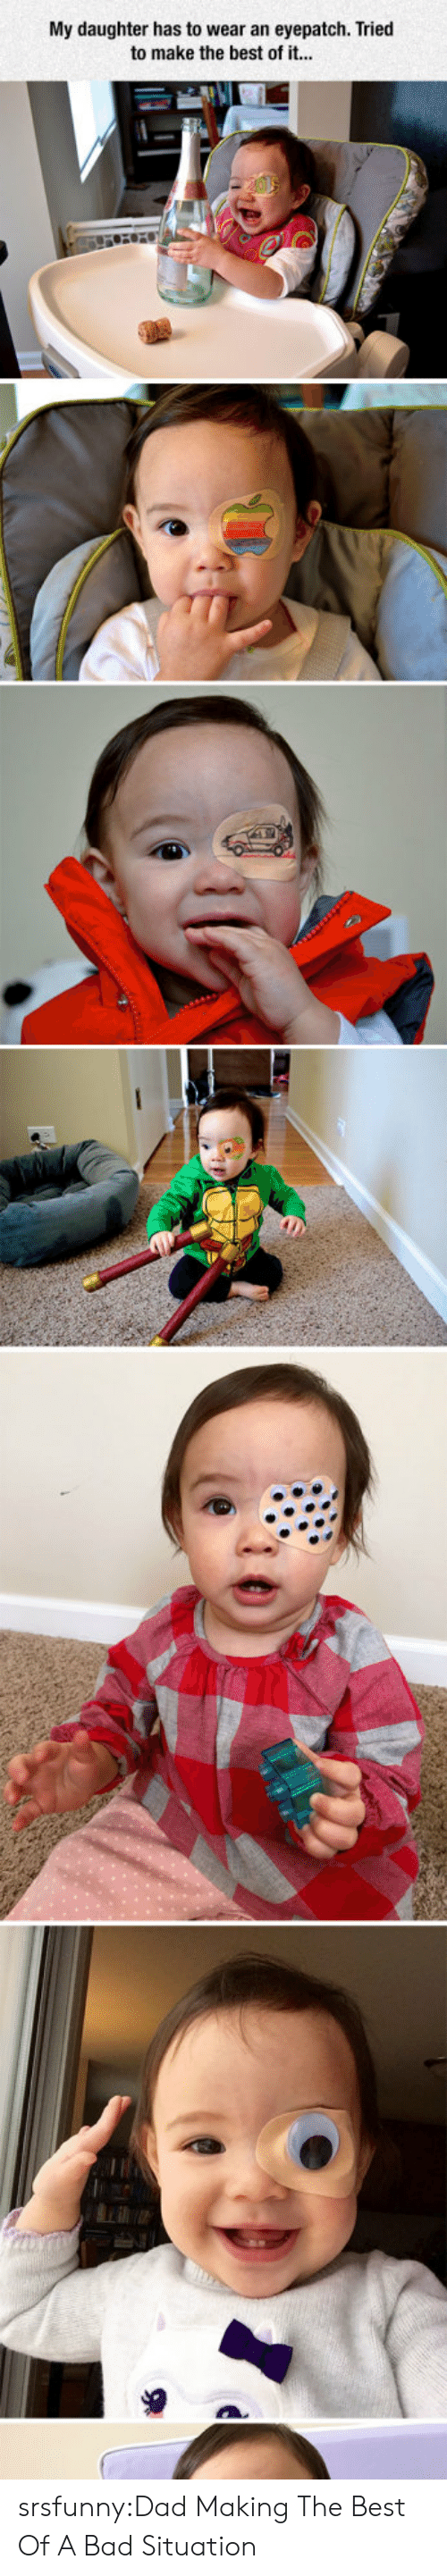 Bad, Dad, and Tumblr: My daughter has to wear an eyepatch. Tried  to make the best of it... srsfunny:Dad Making The Best Of A Bad Situation